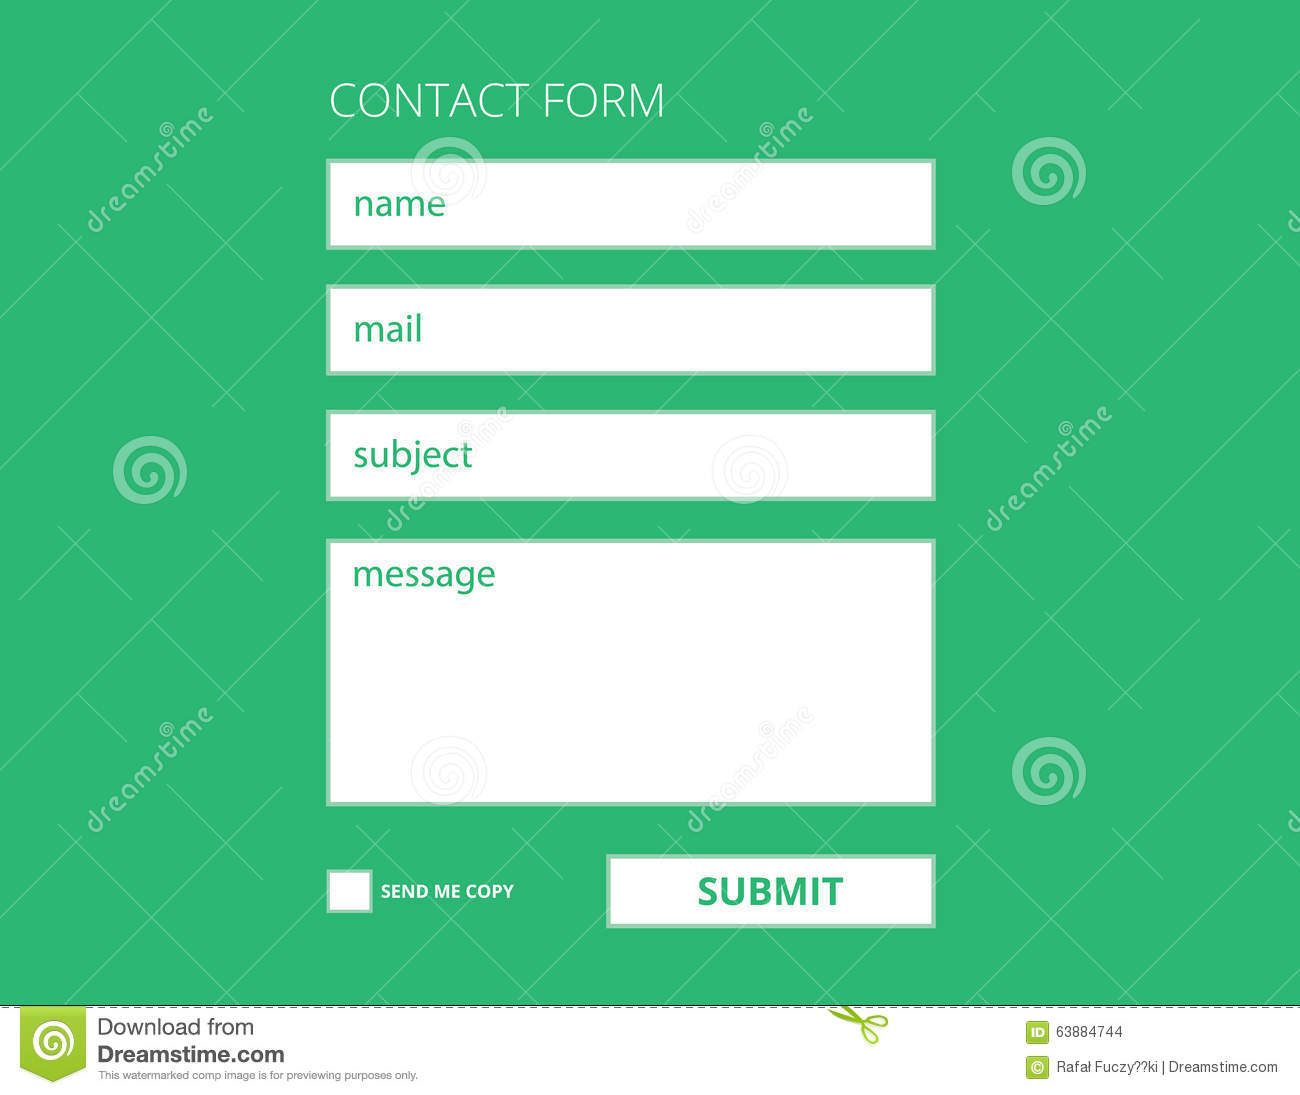 Contact form template stock vector. Illustration of register - 63884744